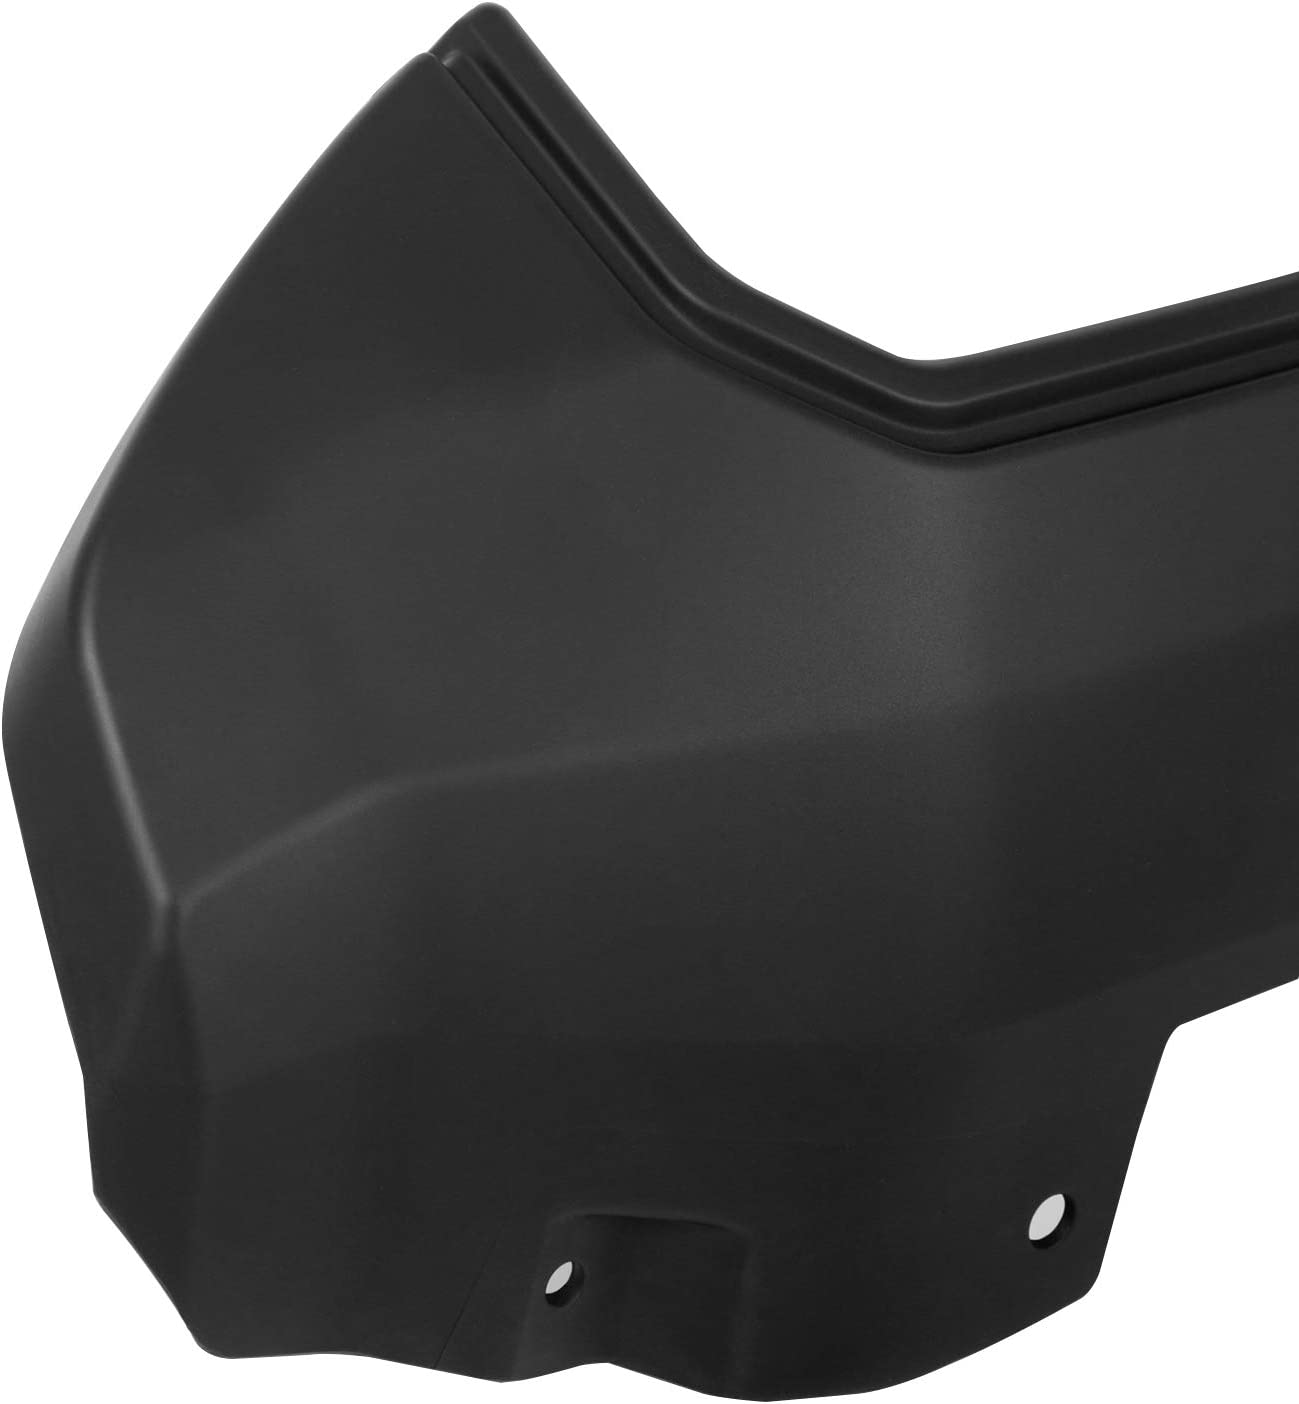 Black ECOTRIC Compatible Front Bumper Skid Plate Replace for 2016 2017 2018 GMC Sierra 1500 Replace for 23243494; GM1015123